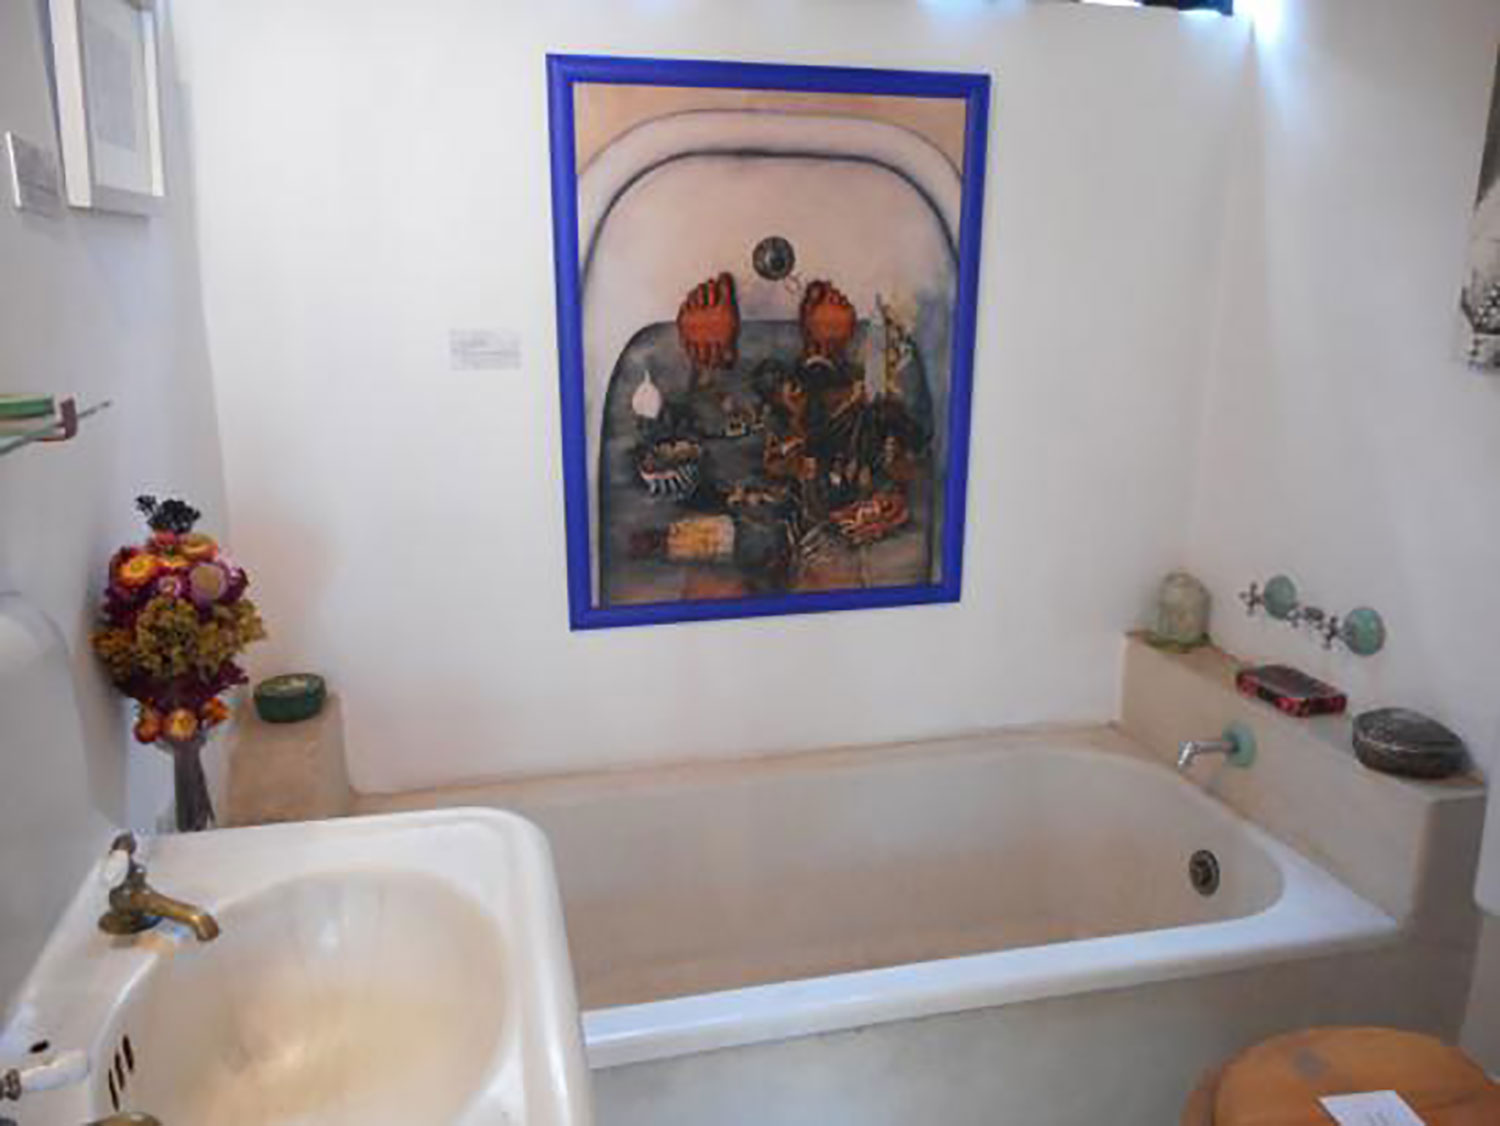 Frida's bathroom.